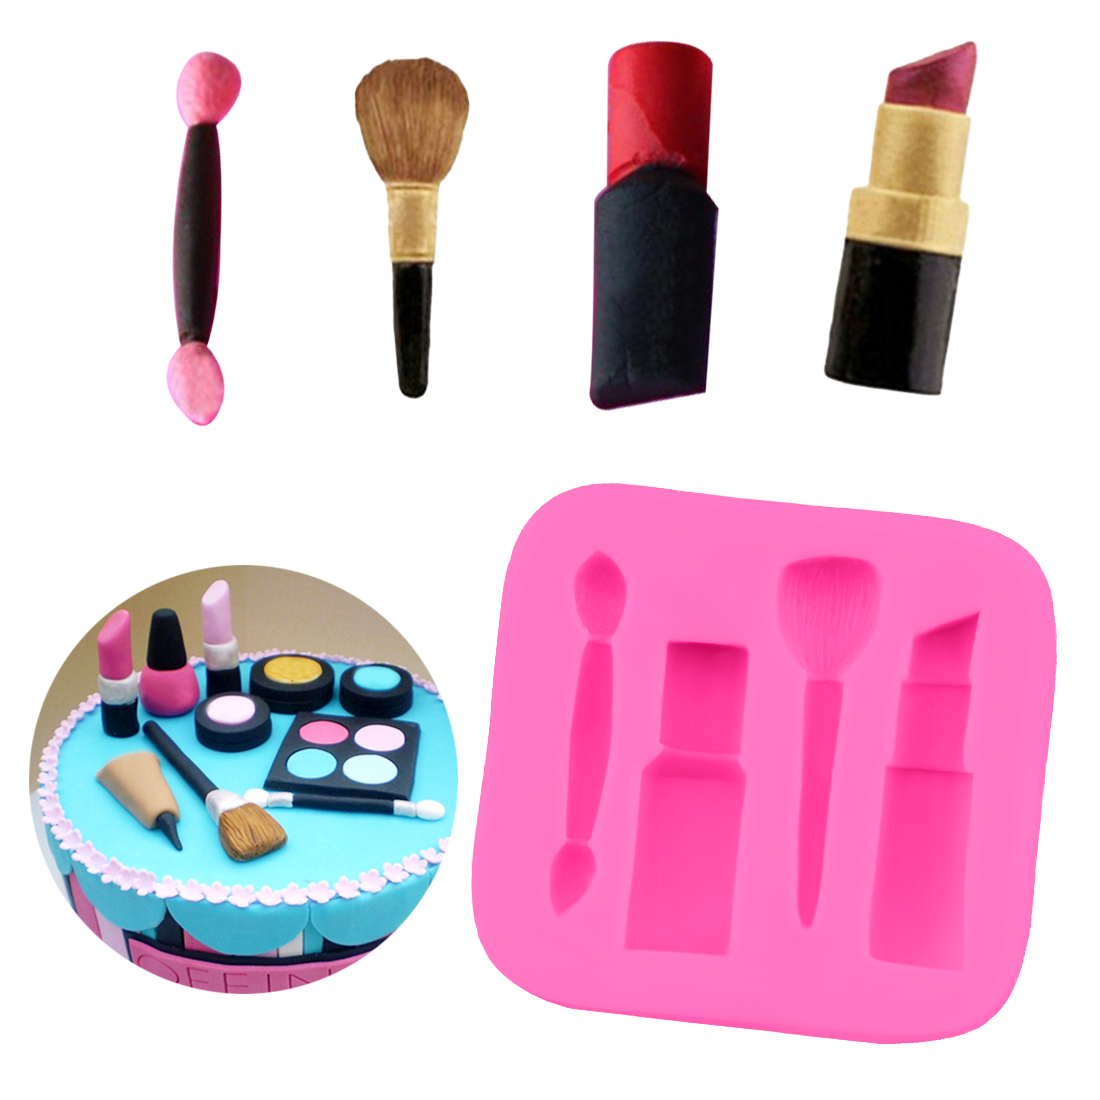 Us 1 19 45 Off Candy Mould 1pc Makeup Lipstick Nail Polish Fondant Molds Cake Decorating Tools Chocolate Soap Mold Cake Stencils Diy Tools In Cake